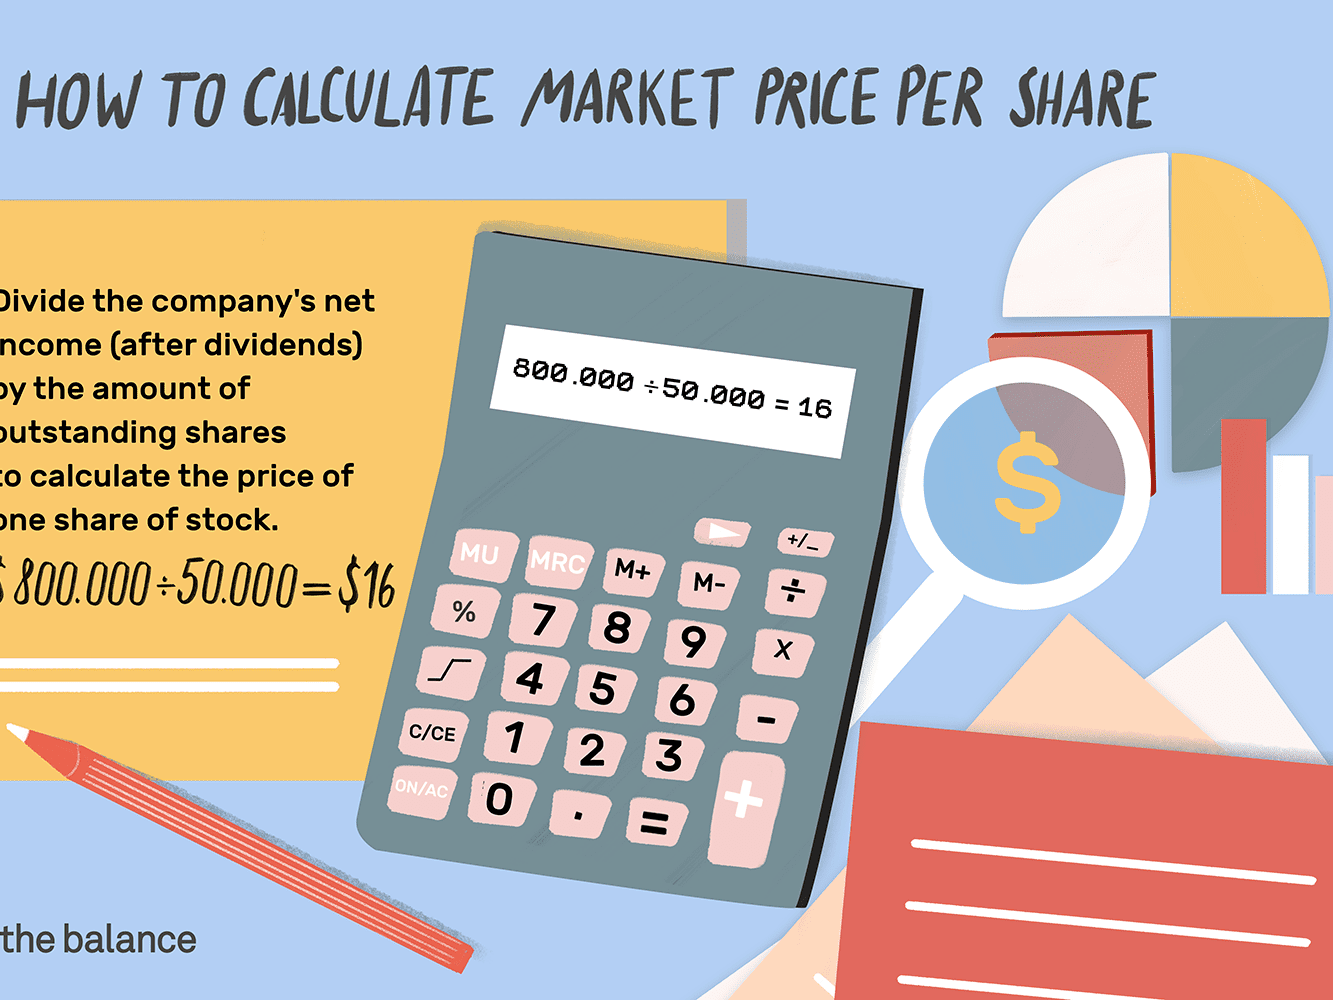 How to Calculate Market Price Per Share